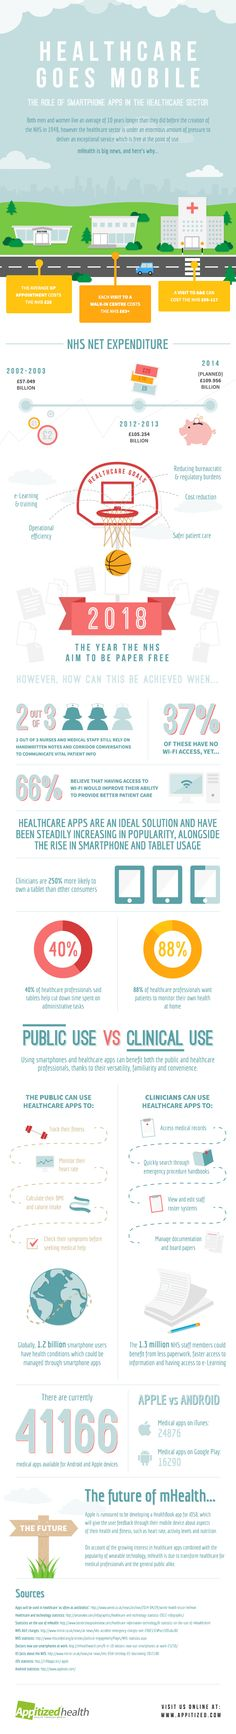 Infographic: compilation of statistics highlighting the benefits to the #NHS of investing in #mHealth and #DigitalHealth